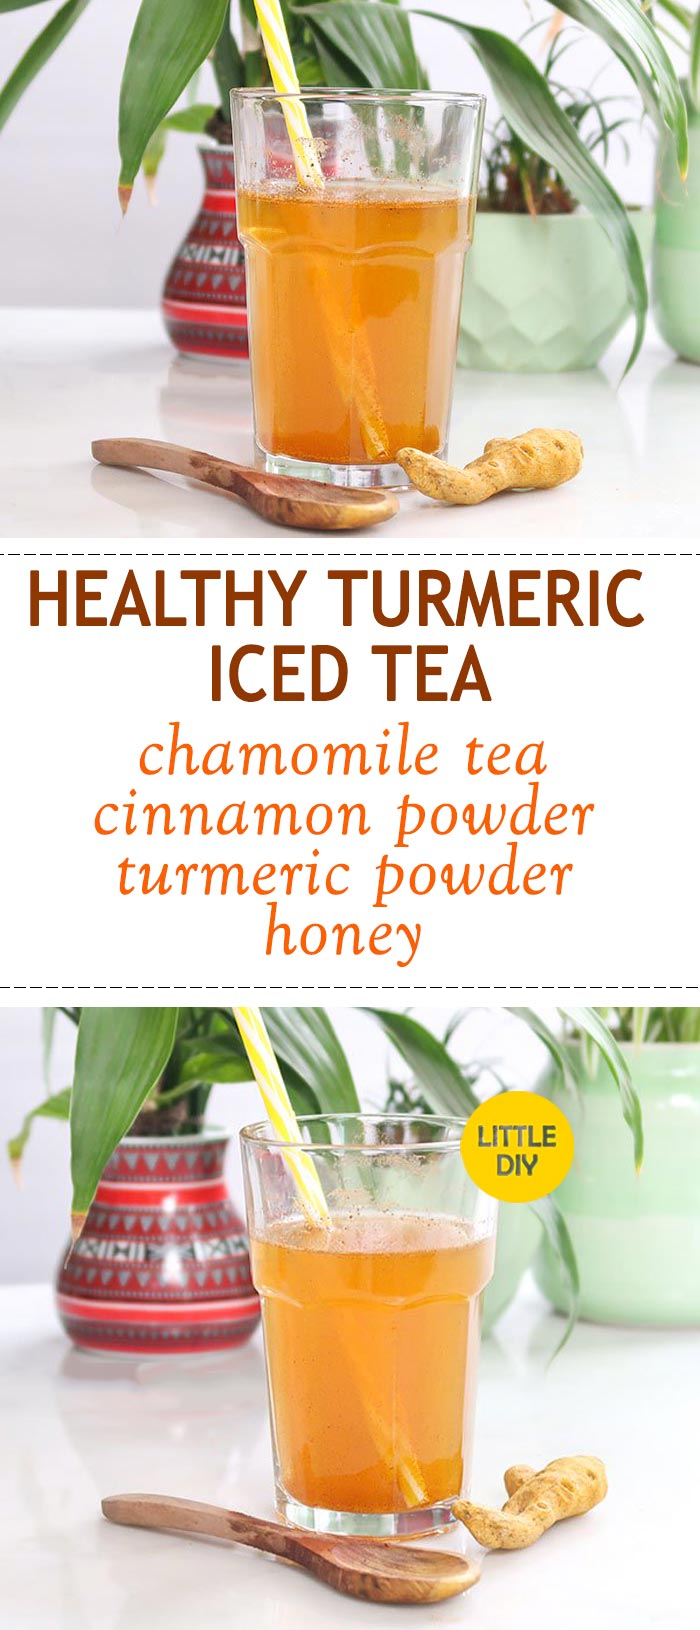 HEALTHY TURMERIC ICED TEA